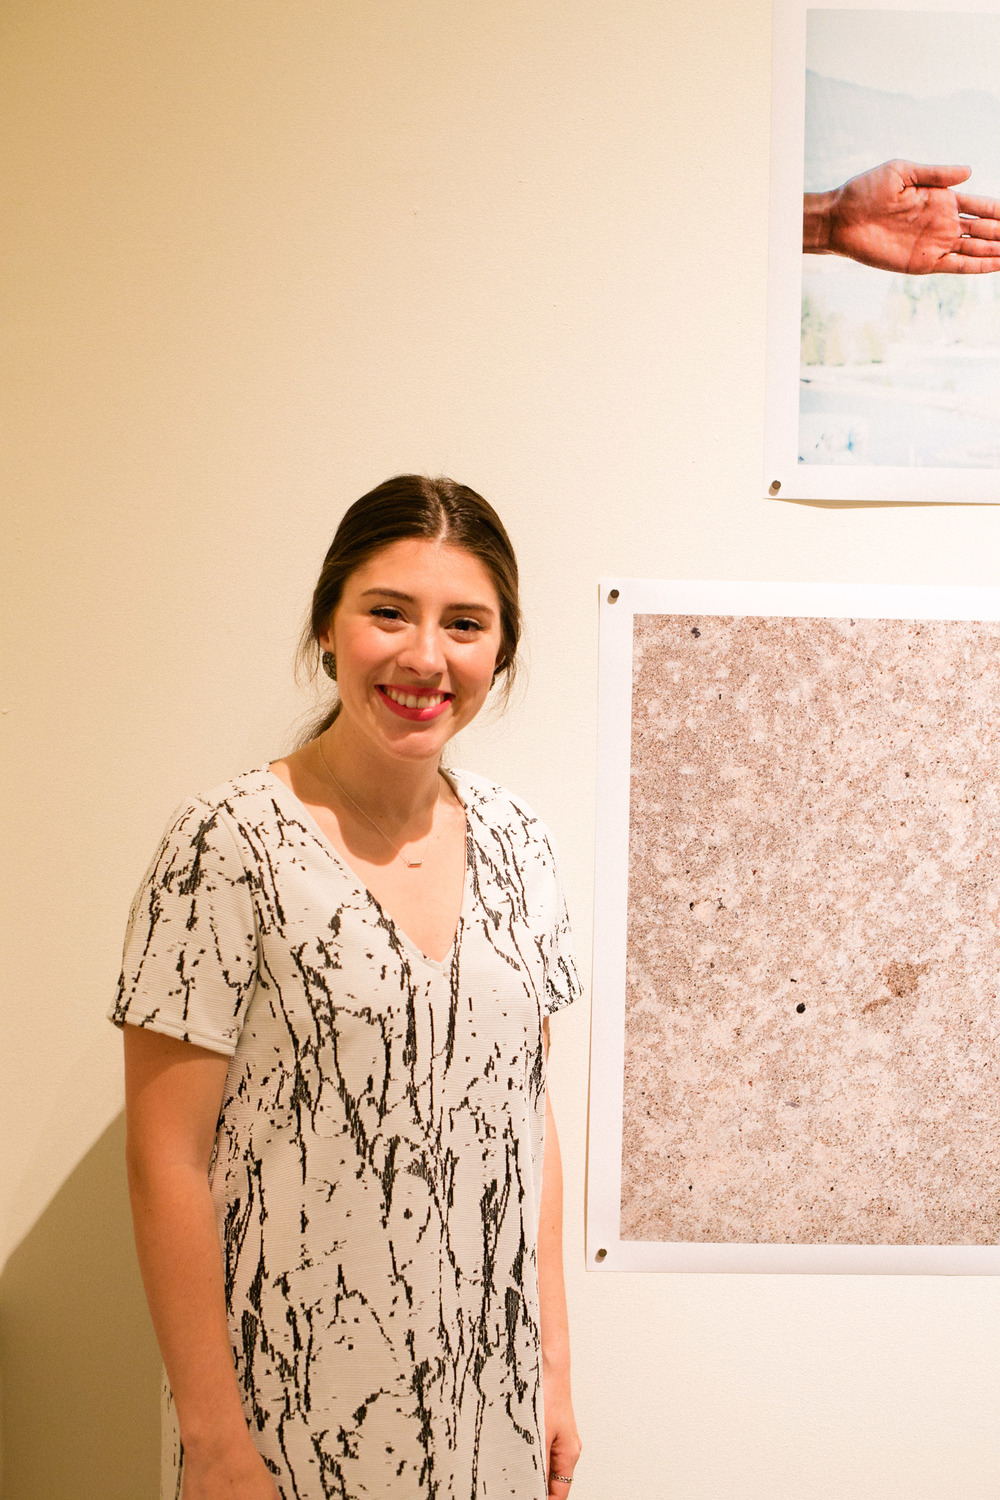 Bianca Buentello, Studio Art Major wth focus in photography and video    Her works are inspired by the idea of thresholds and boundaries, the appropriation of images and remnants left through loss.